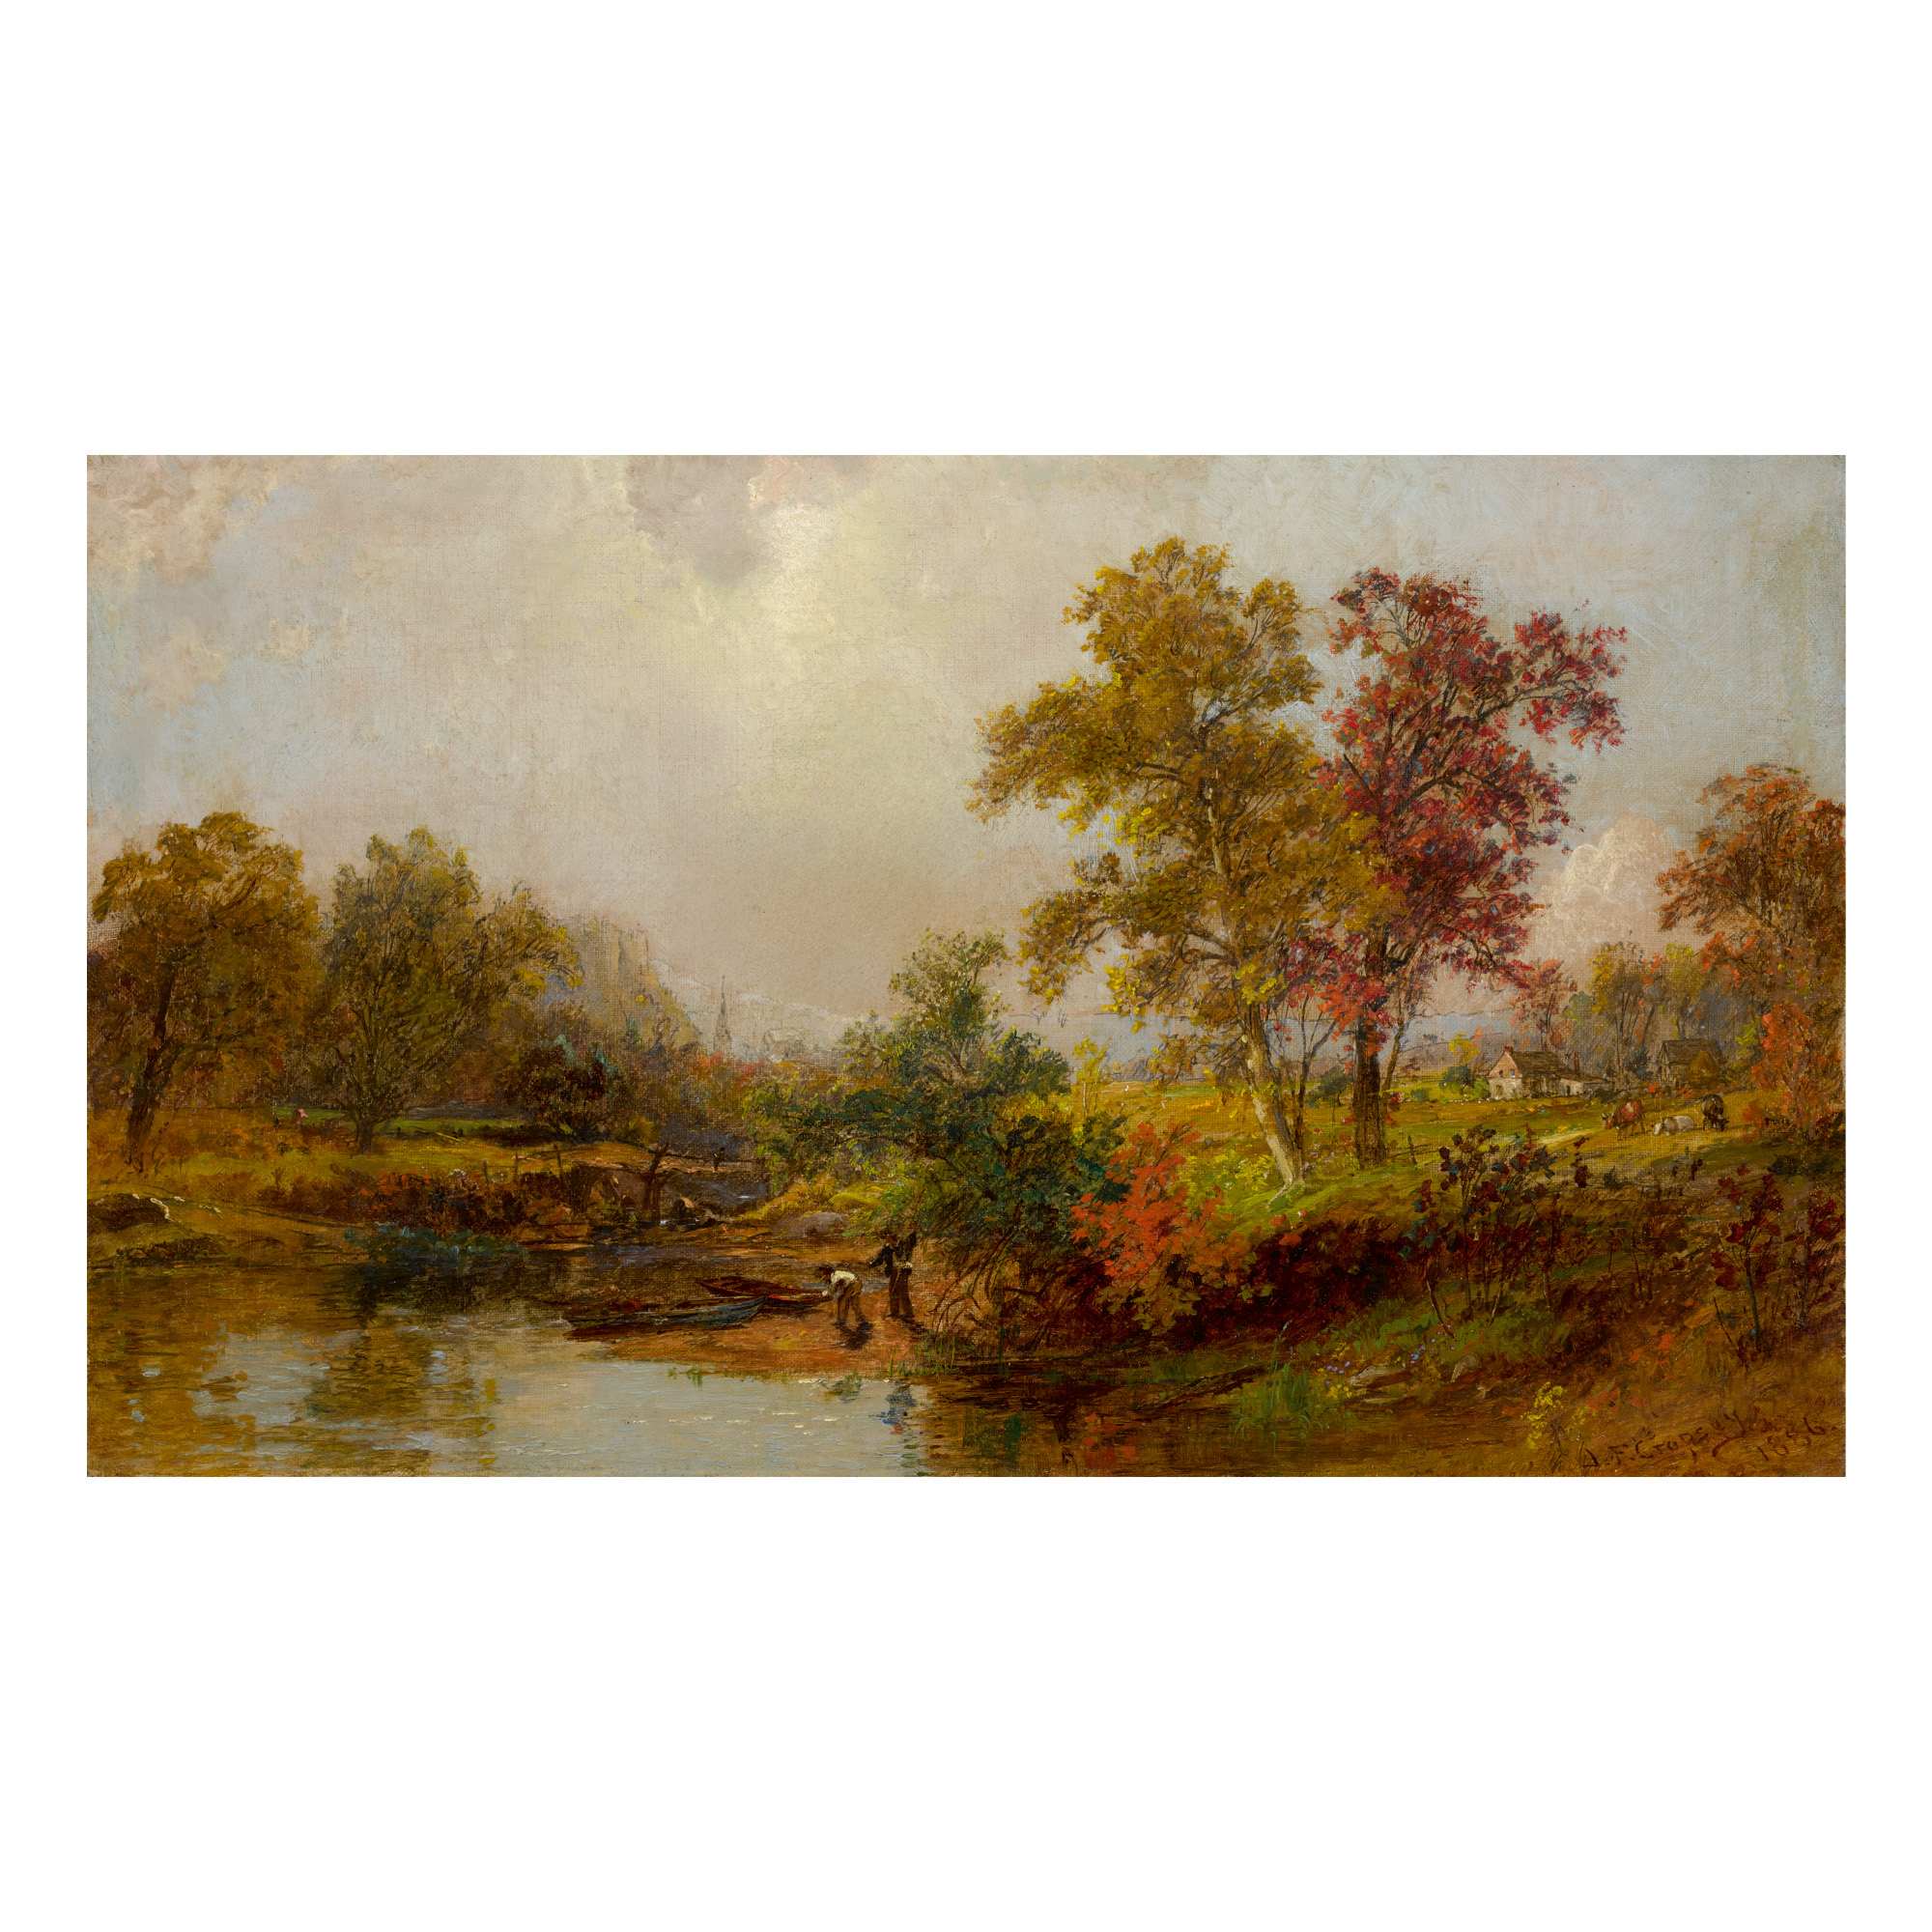 JASPER FRANCIS CROPSEY | AN OCTOBER DAY